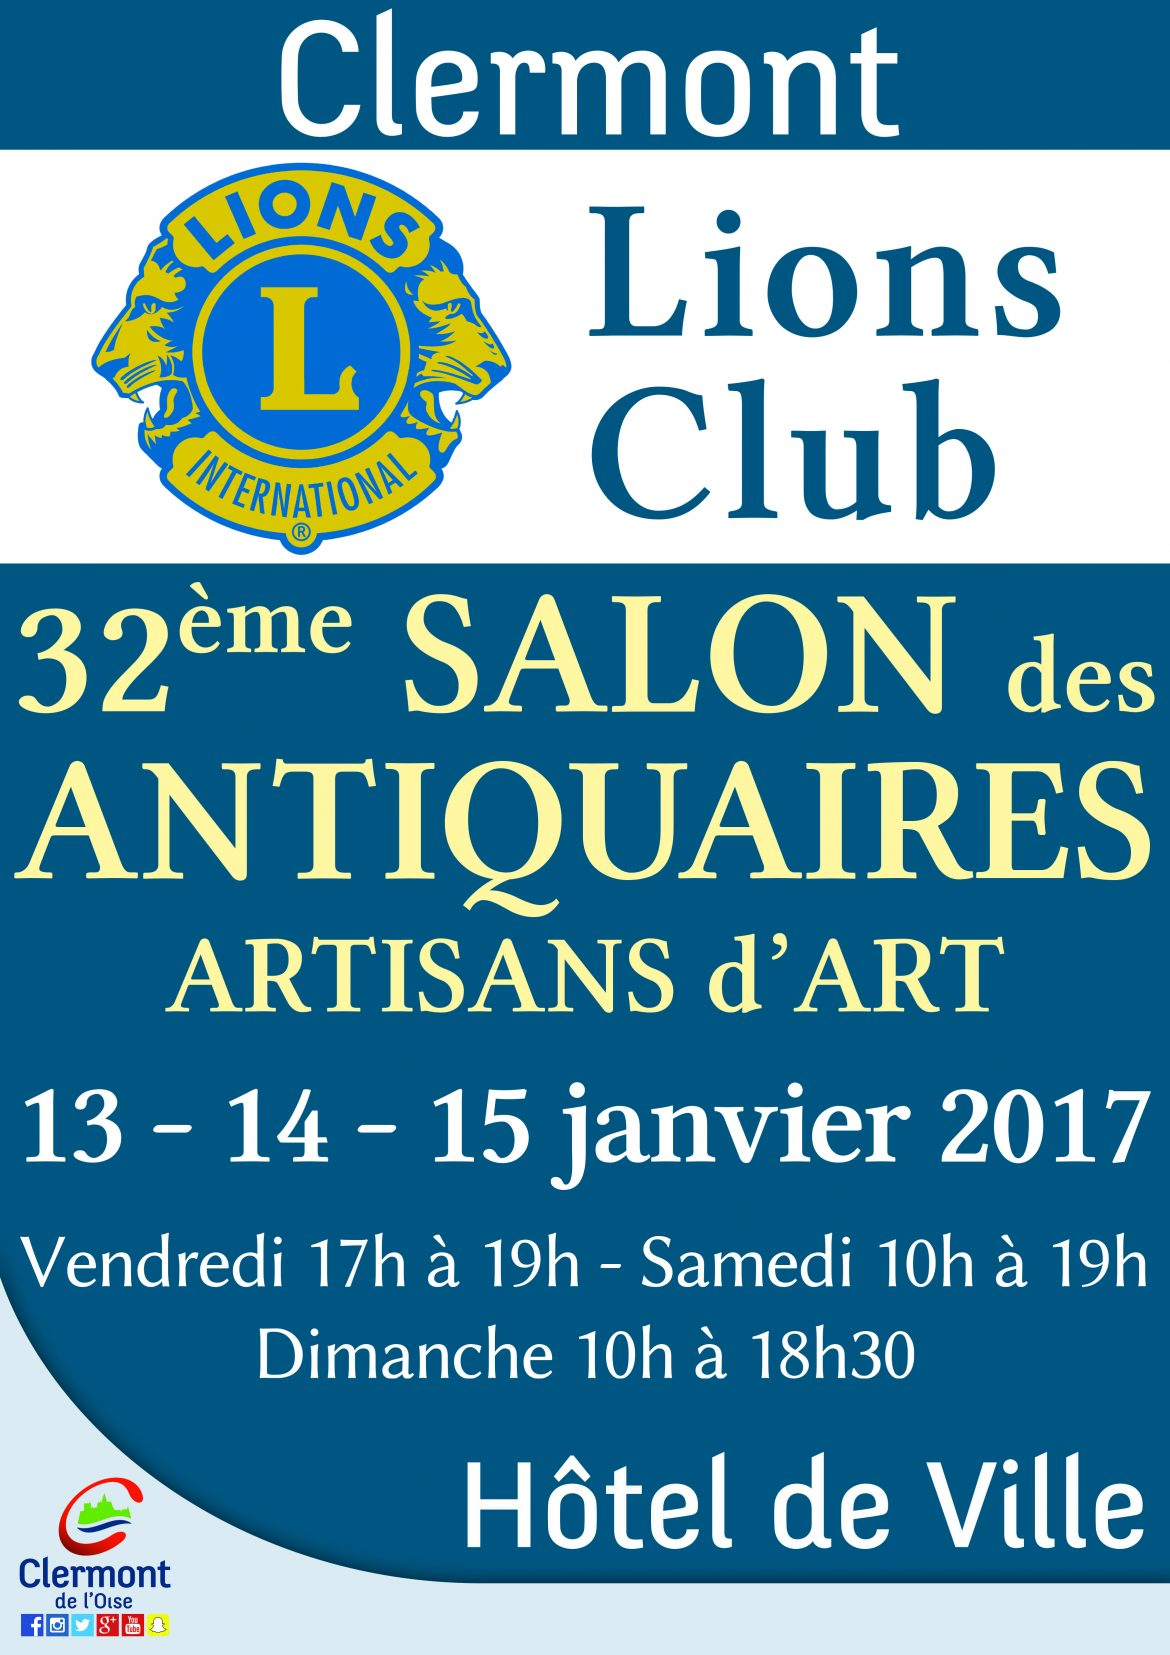 32 me salon des antiquaires artisans d art lions club for Salon antiquaires 2017